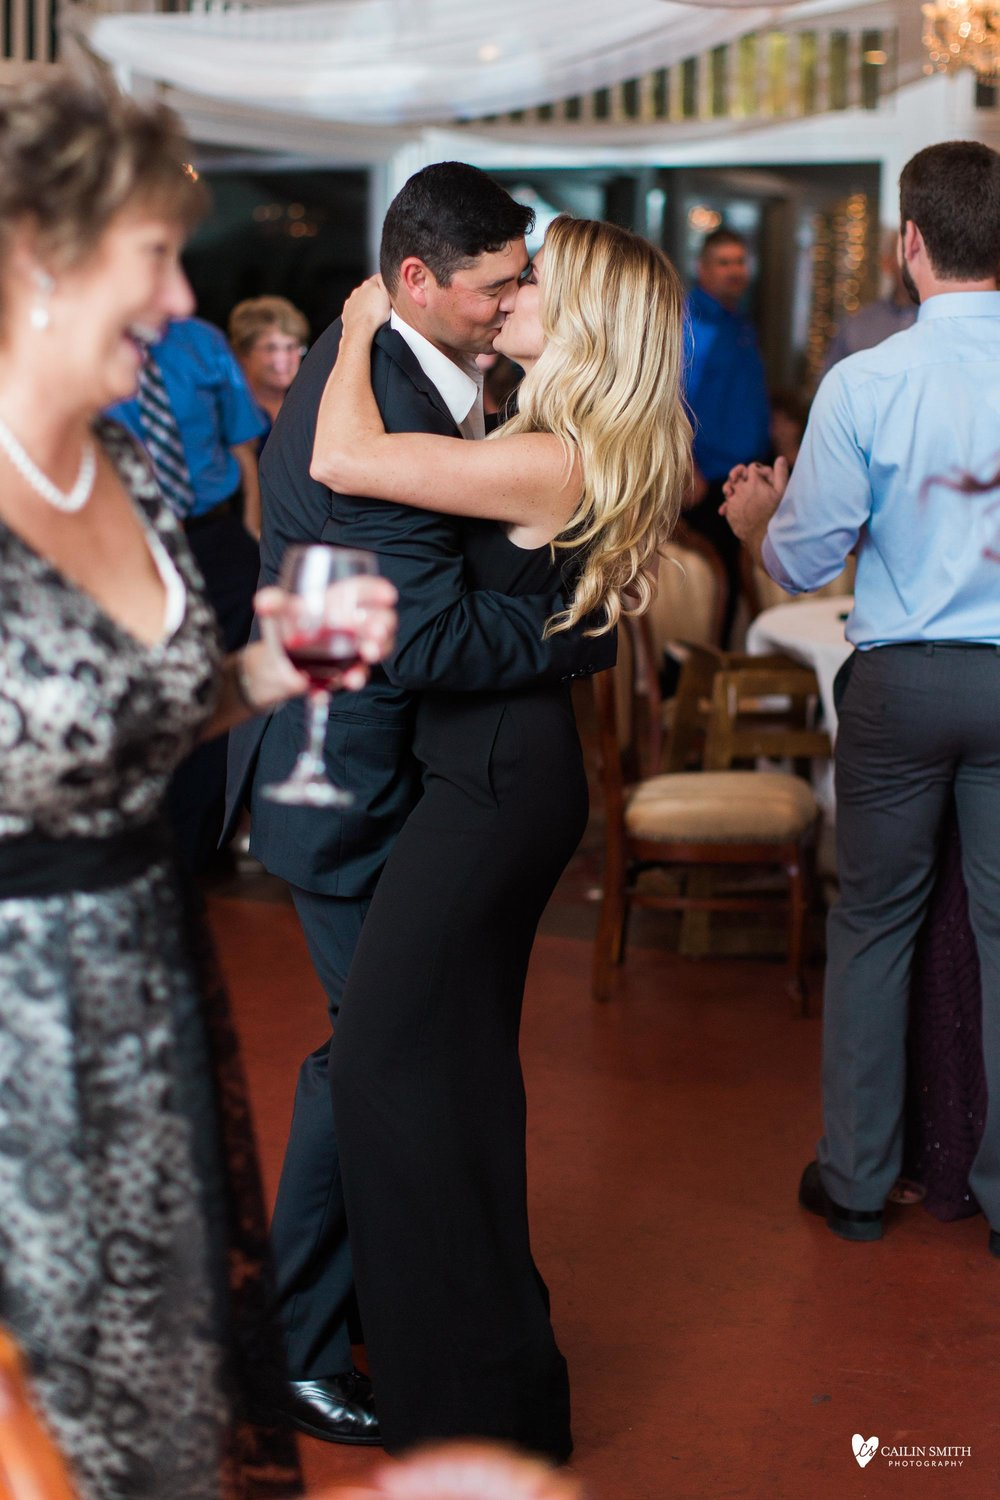 Shelby_Jeff_Ponte_Vedra_Hilltop_Club_Wedding_Photography_103.jpg